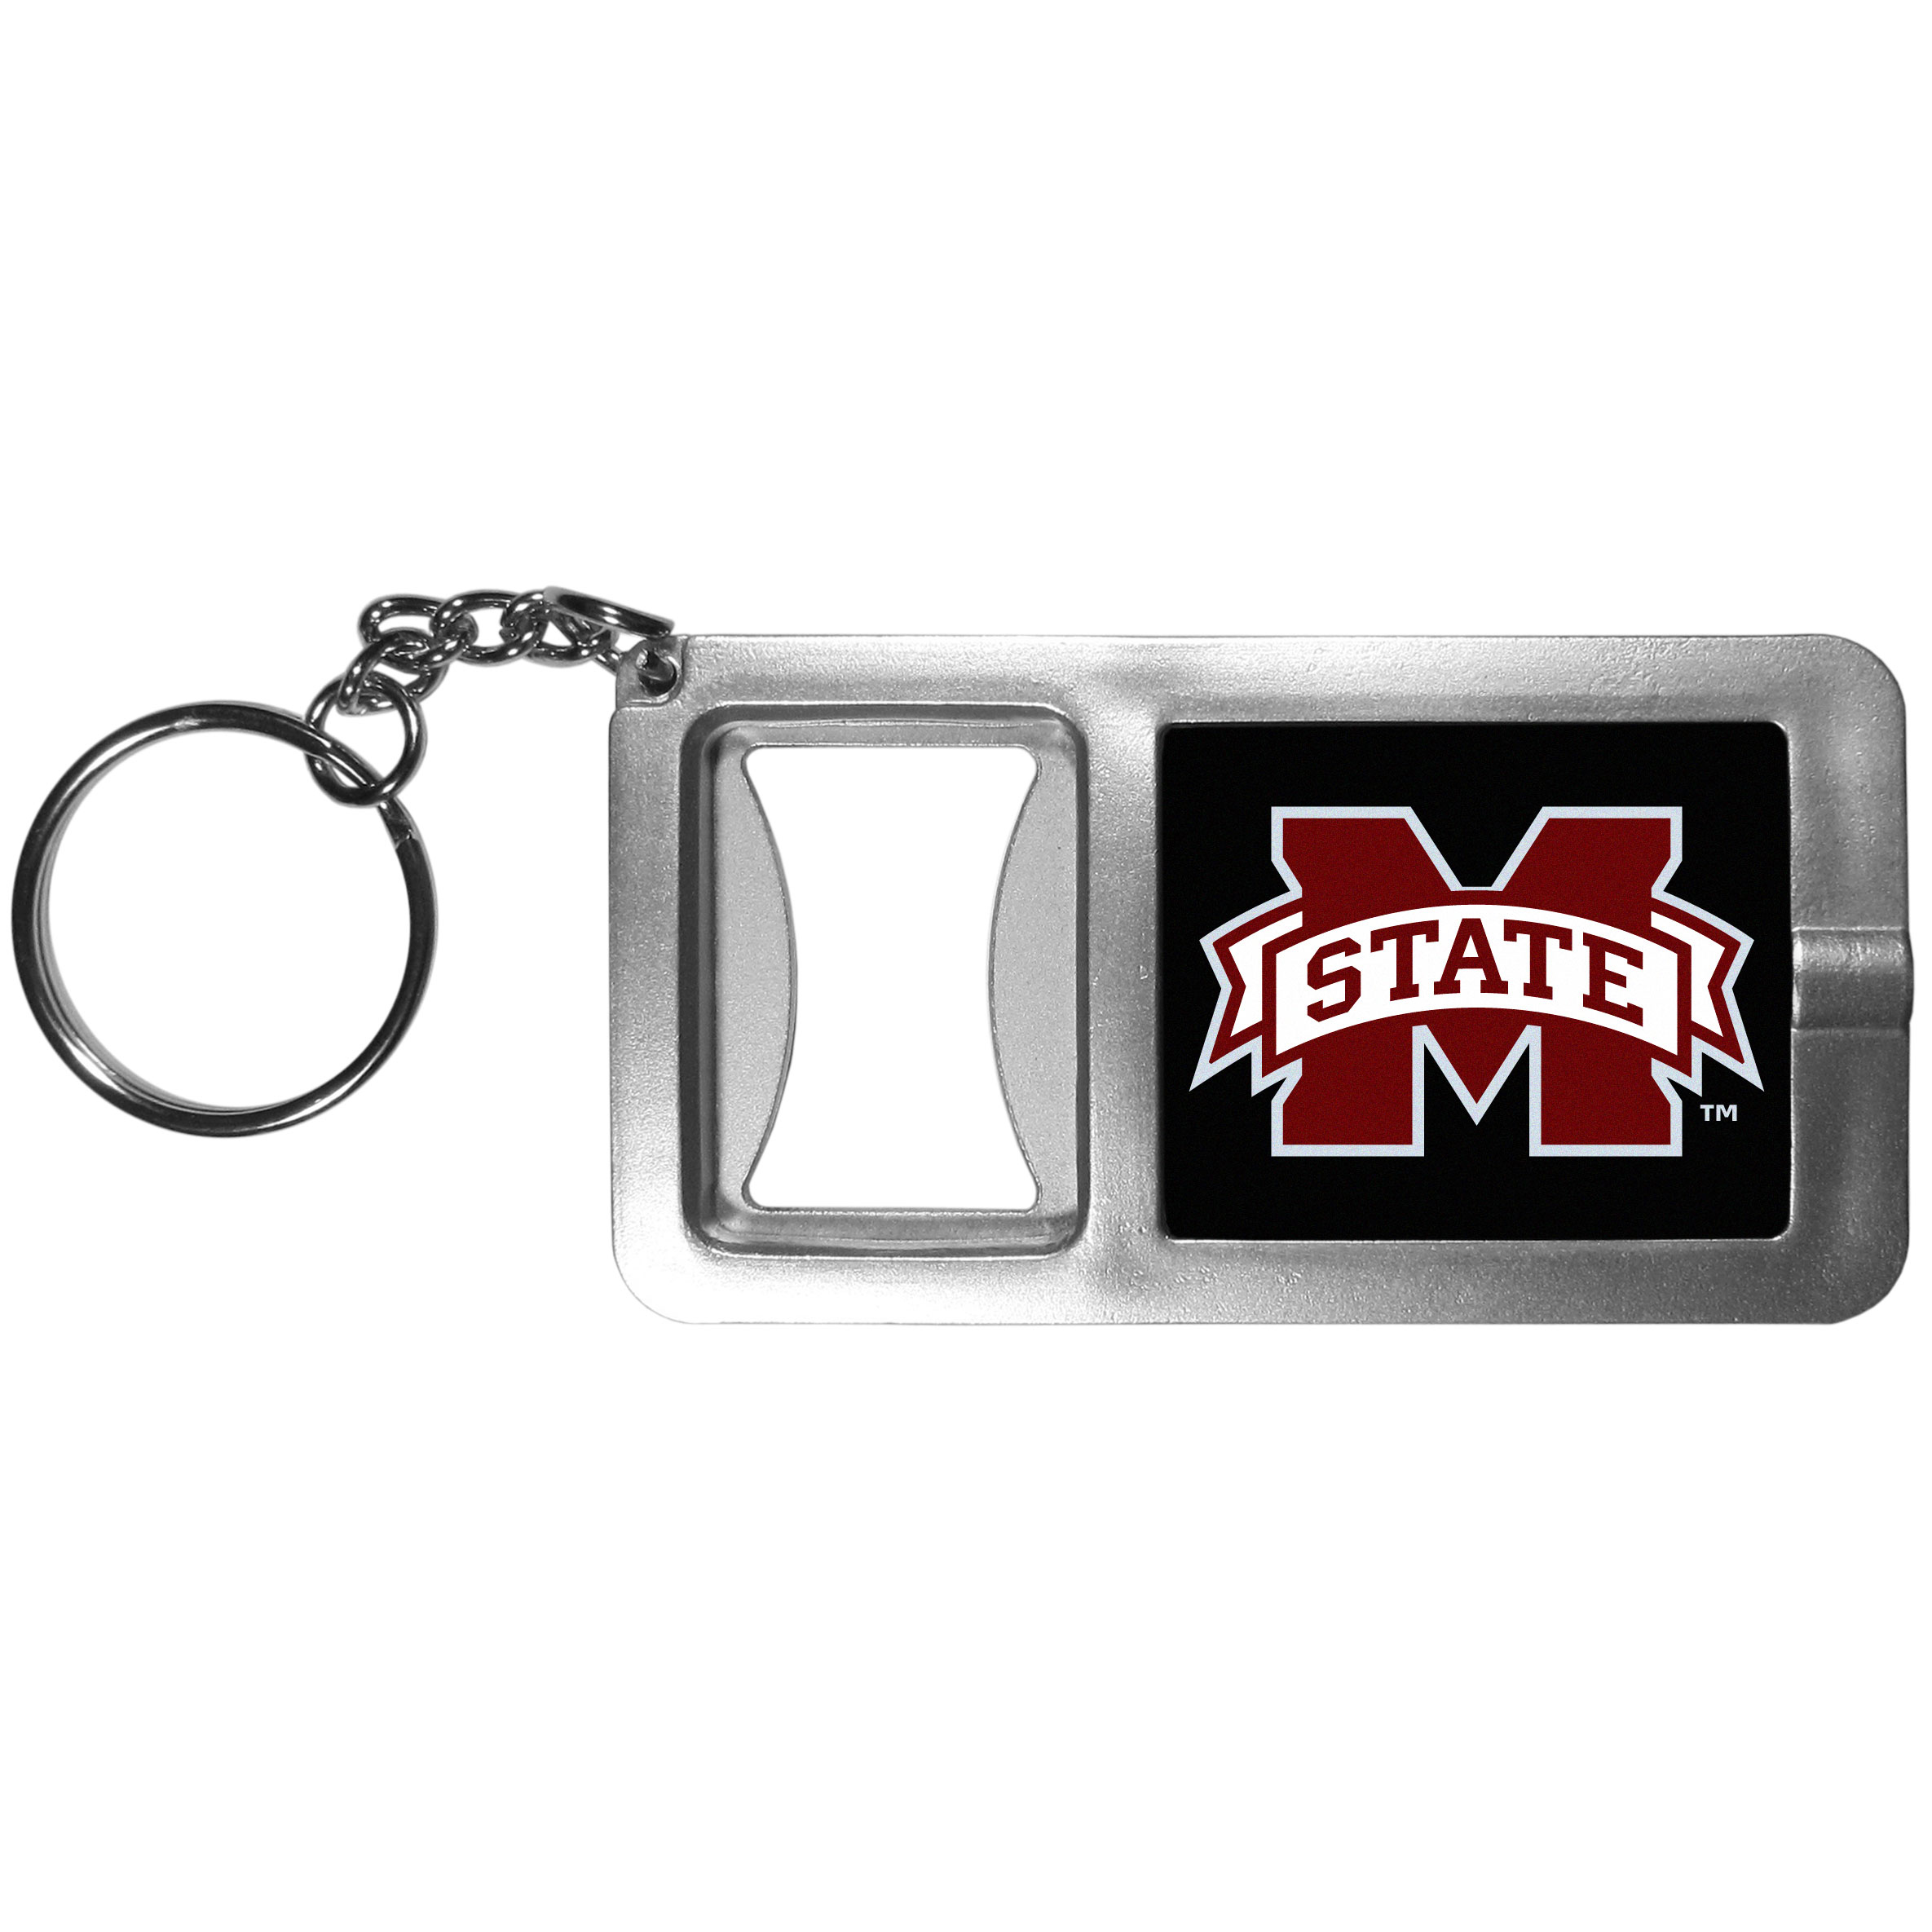 Mississippi St. Bulldogs Flashlight Key Chain with Bottle Opener - Never be without light with our Mississippi St. Bulldogs flashlight keychain that features a handy bottle opener feature. This versatile key chain is perfect for camping and travel and is a great way to show off your team pride!